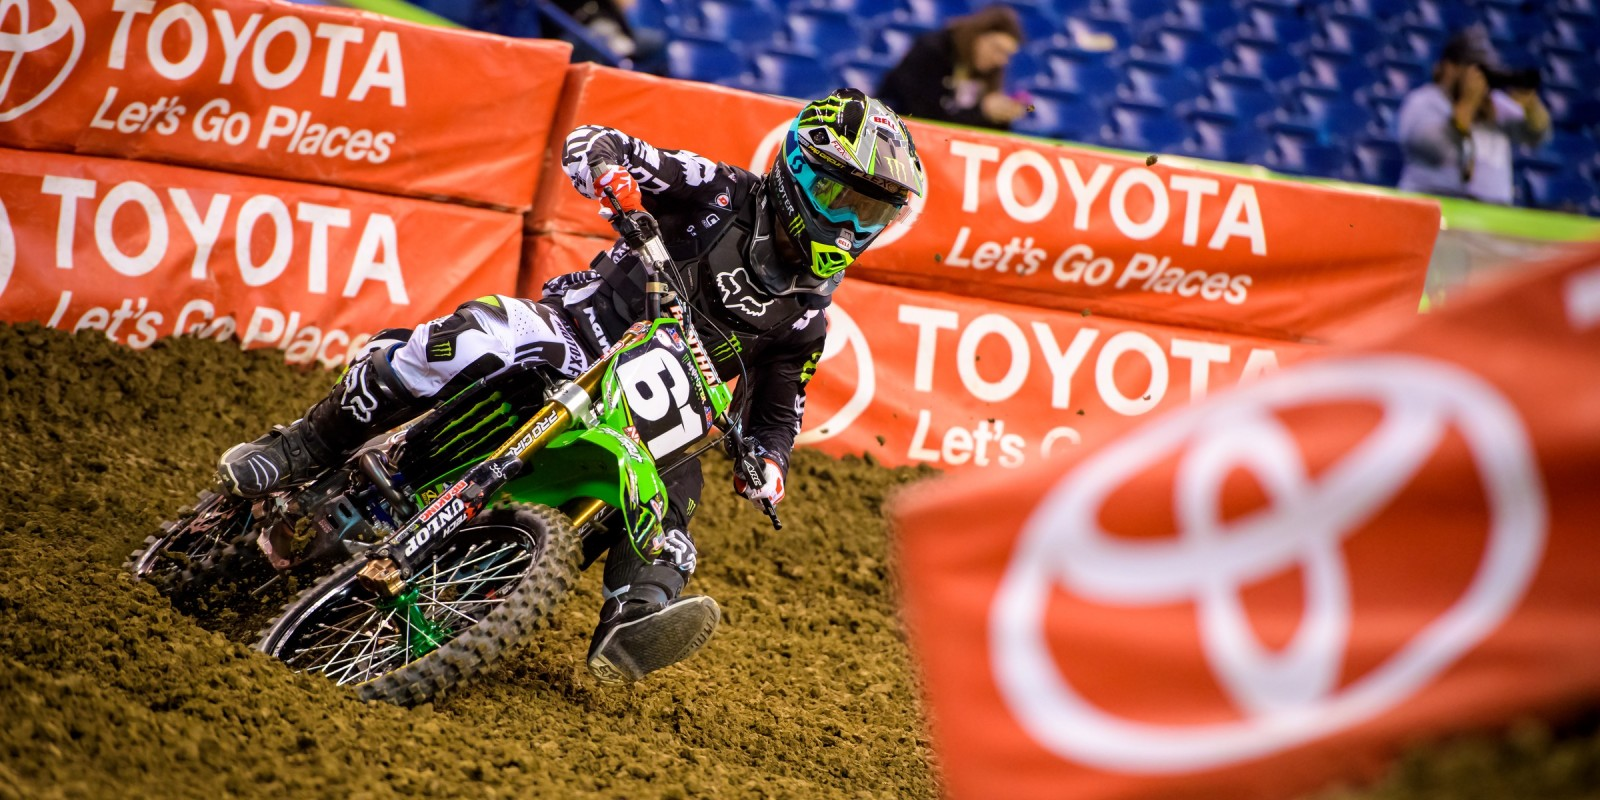 Monster athletes compete in the Supercross 2016 season in Indianapolis